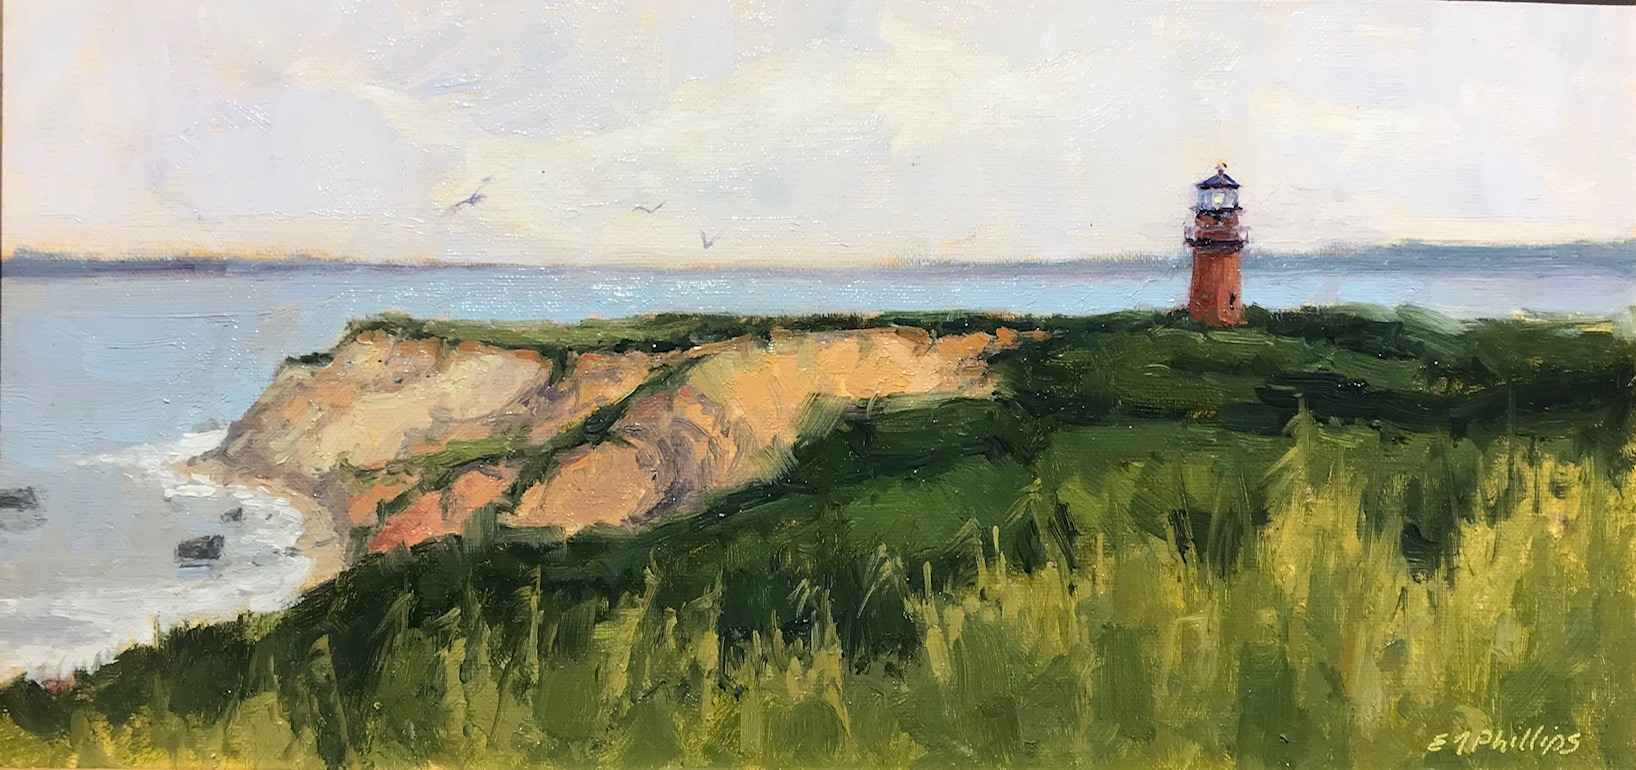 Aquinnah View by  Elise Phillips - Masterpiece Online